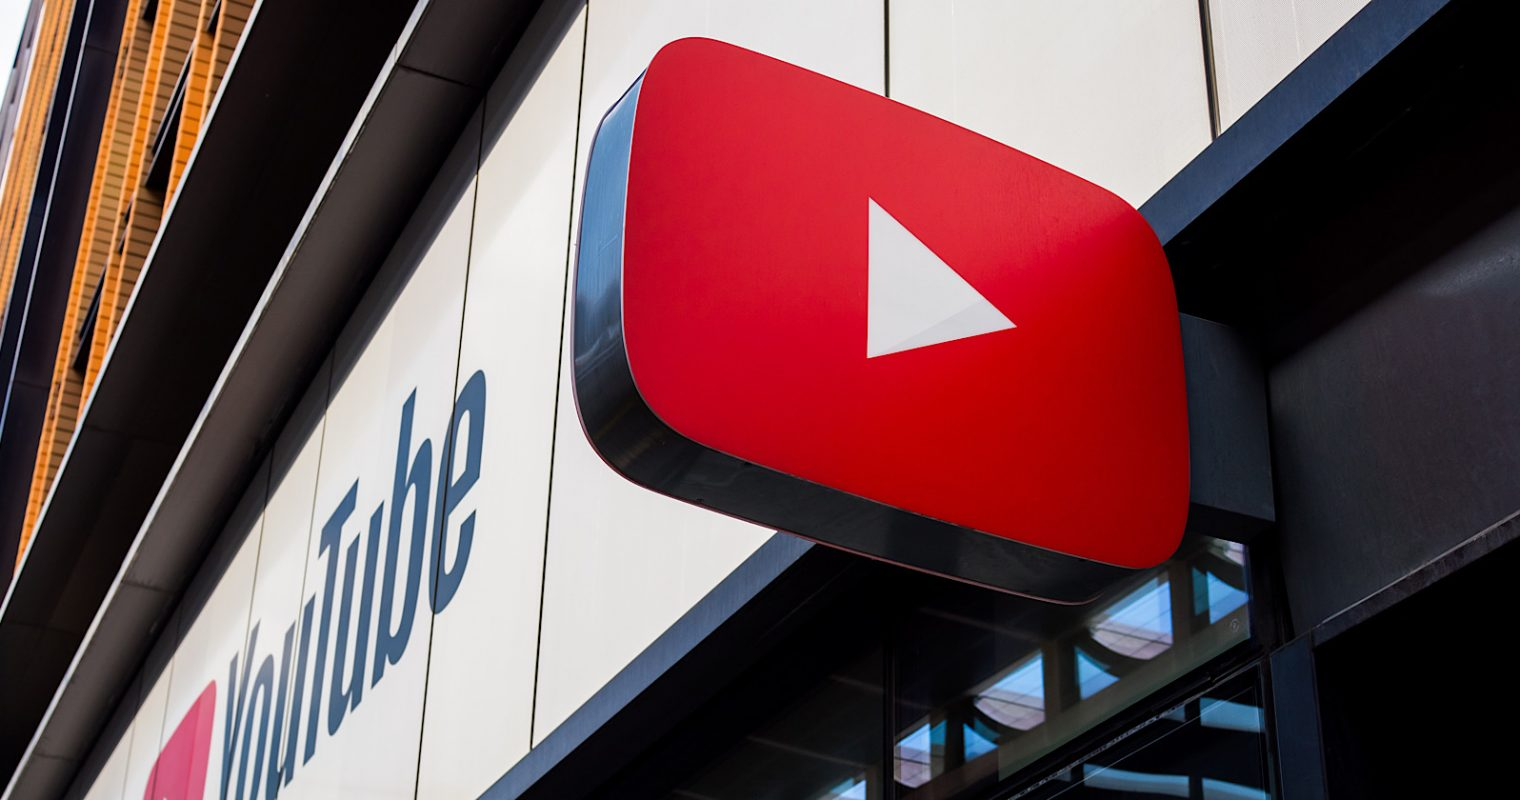 YouTube Rolls Out 3 Updates For Live Streams